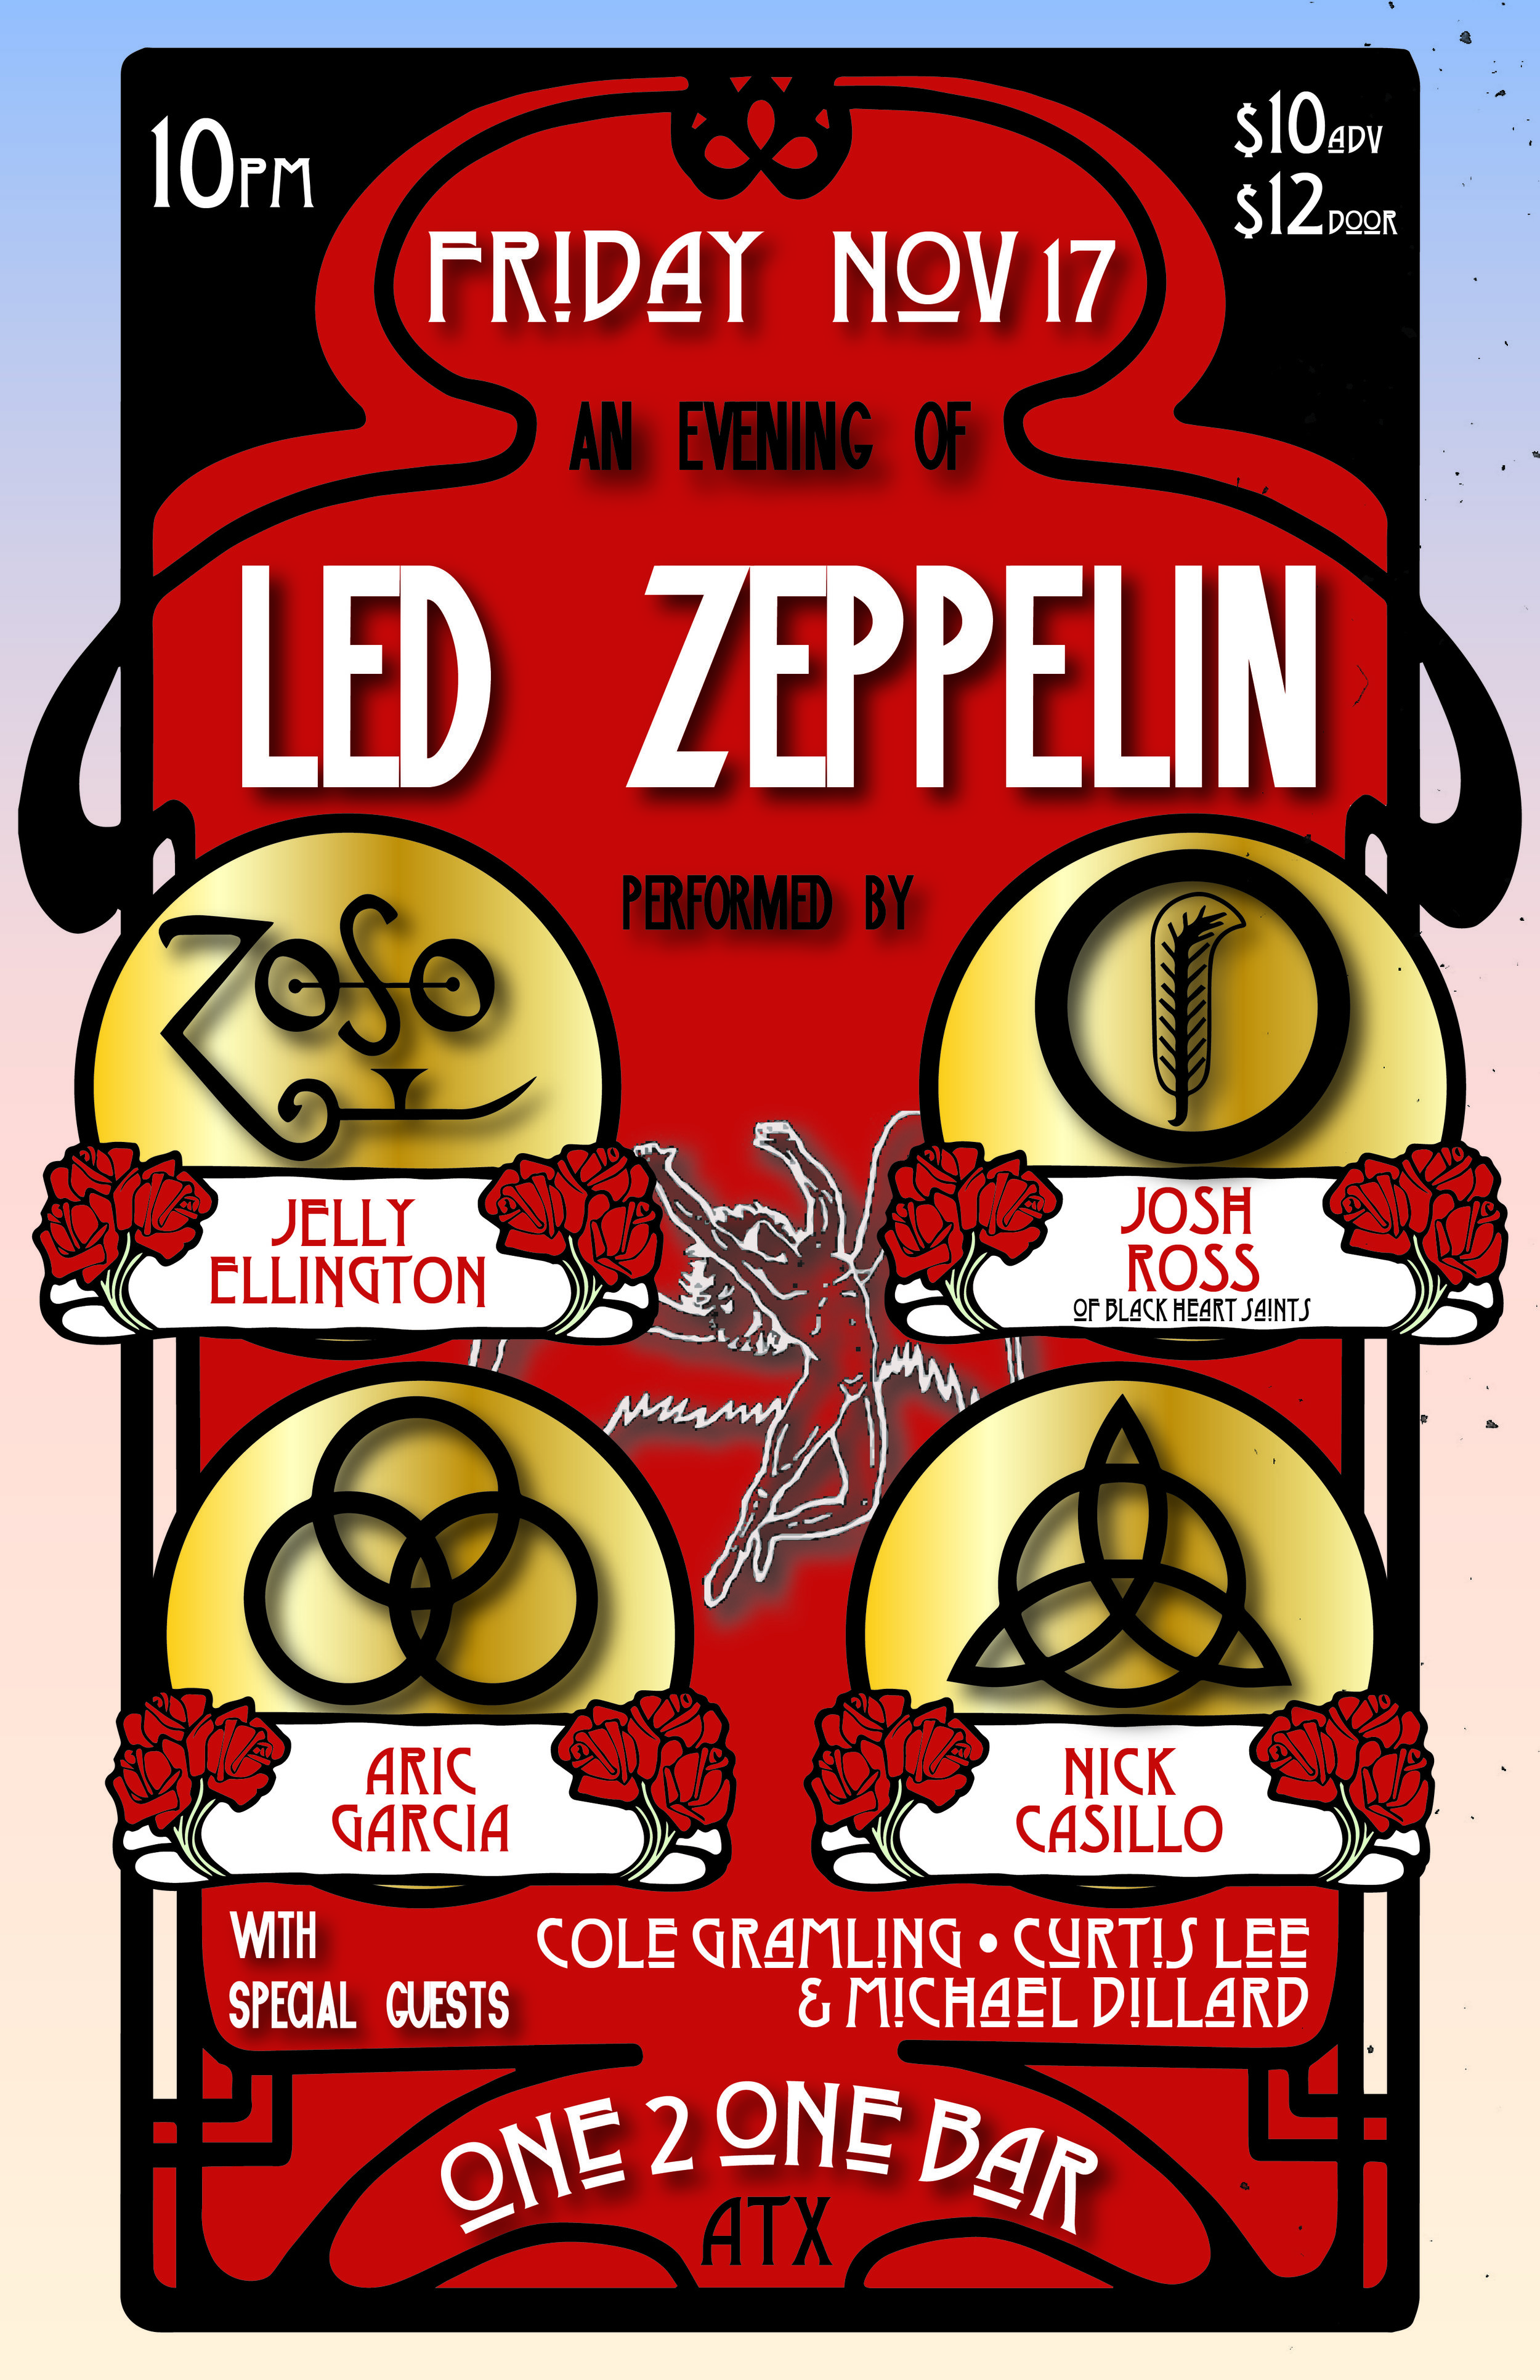 ledzep_tribute_edit-05.jpg